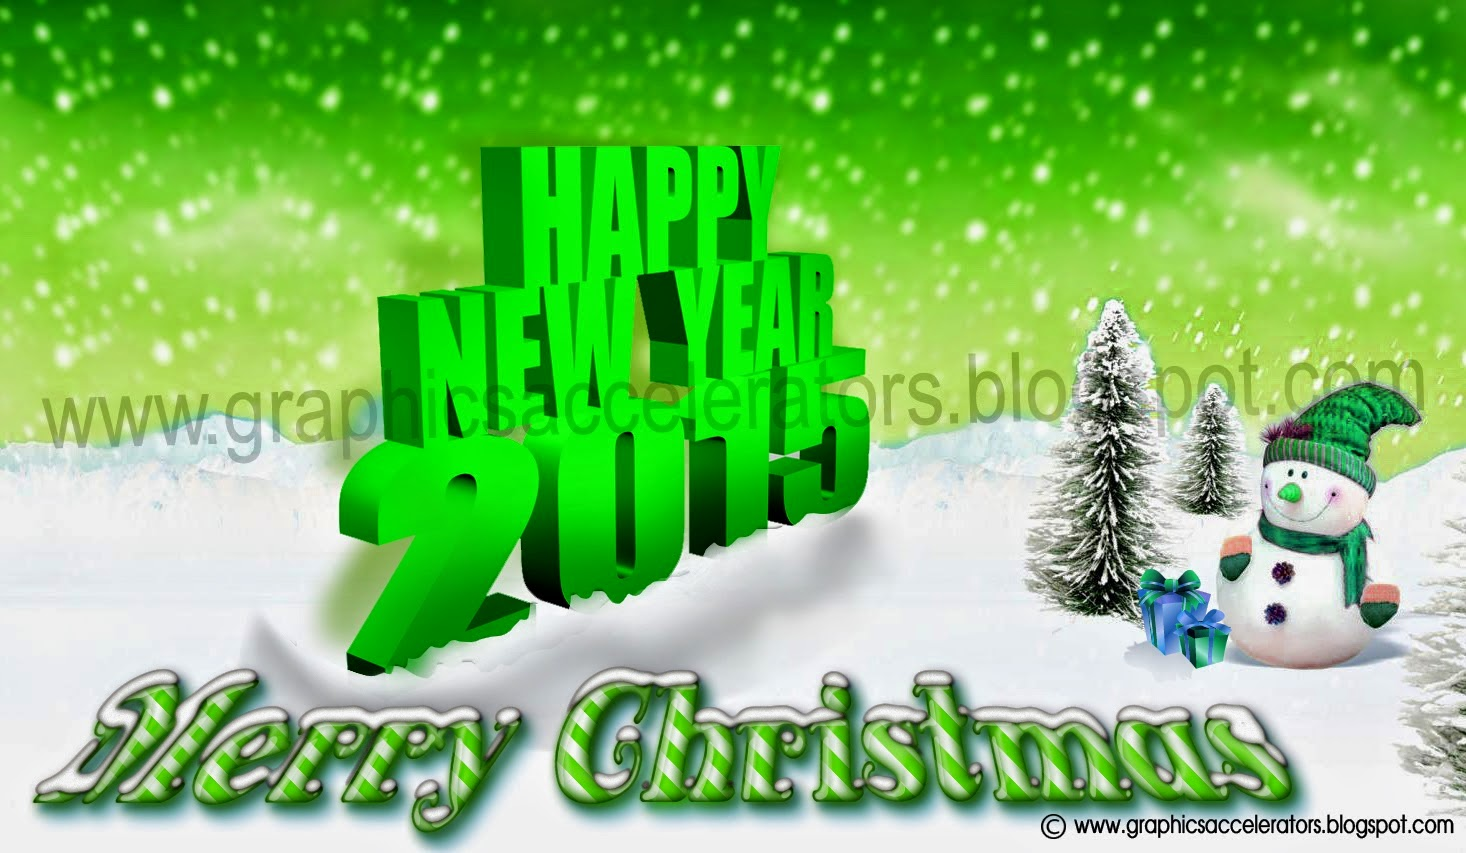 Merry christmas and happy new year 2015 greetings pictures merry christmas and happy new year 2015 kristyandbryce Choice Image